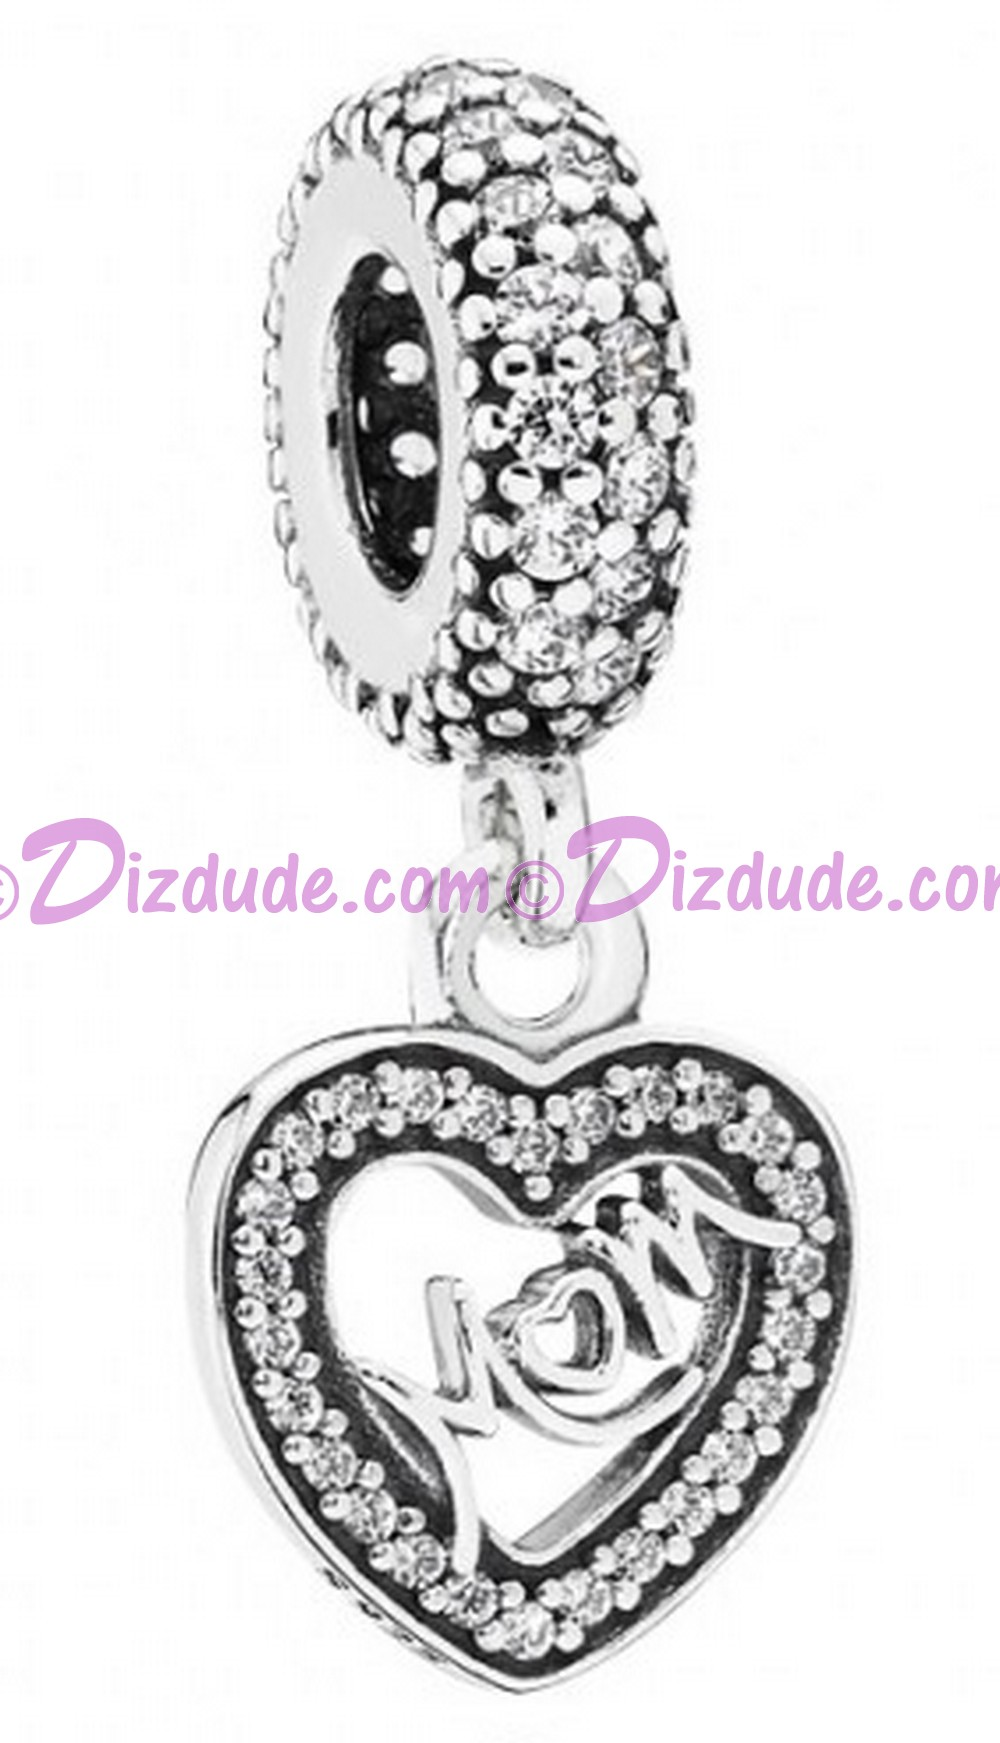 (SOLD OUT) Disney Pandora Center of My Heart Dangle Charm with Cubic Zirconias - Mothers Day Collection 2015